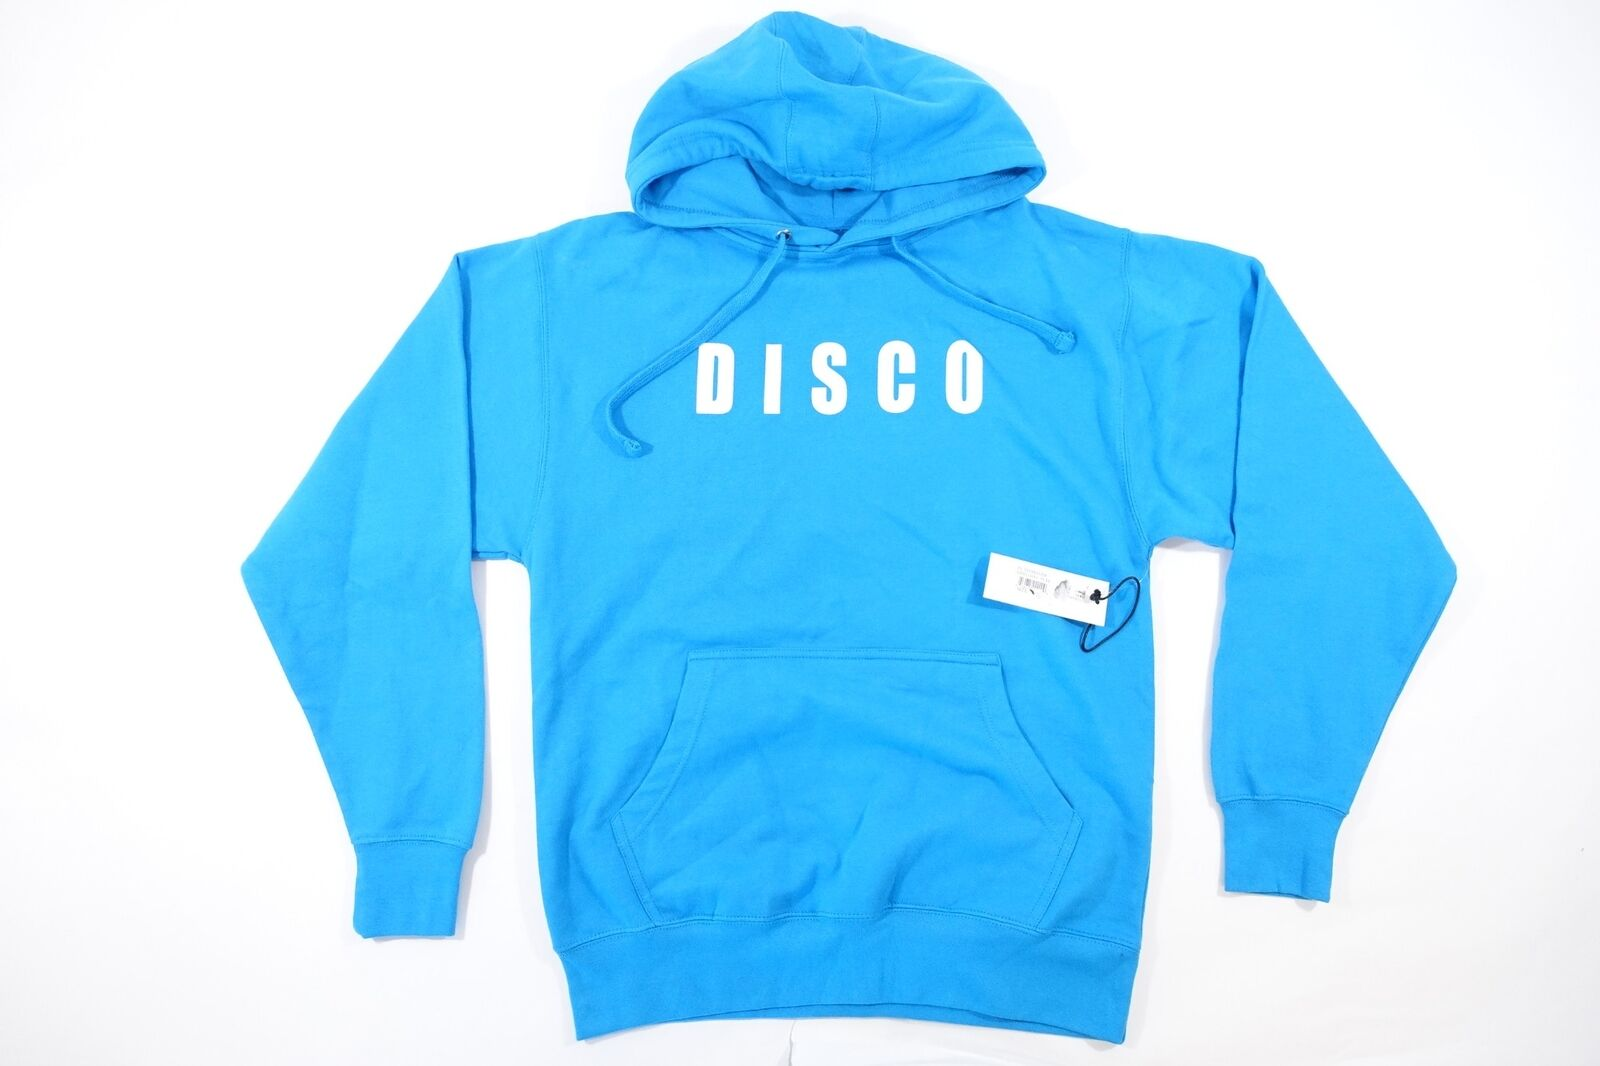 DISCO TUESDAYS SMALL THE ULTIMATE IN LO-FI STEREO RETRO VINTAGE HOODIE SWEATER